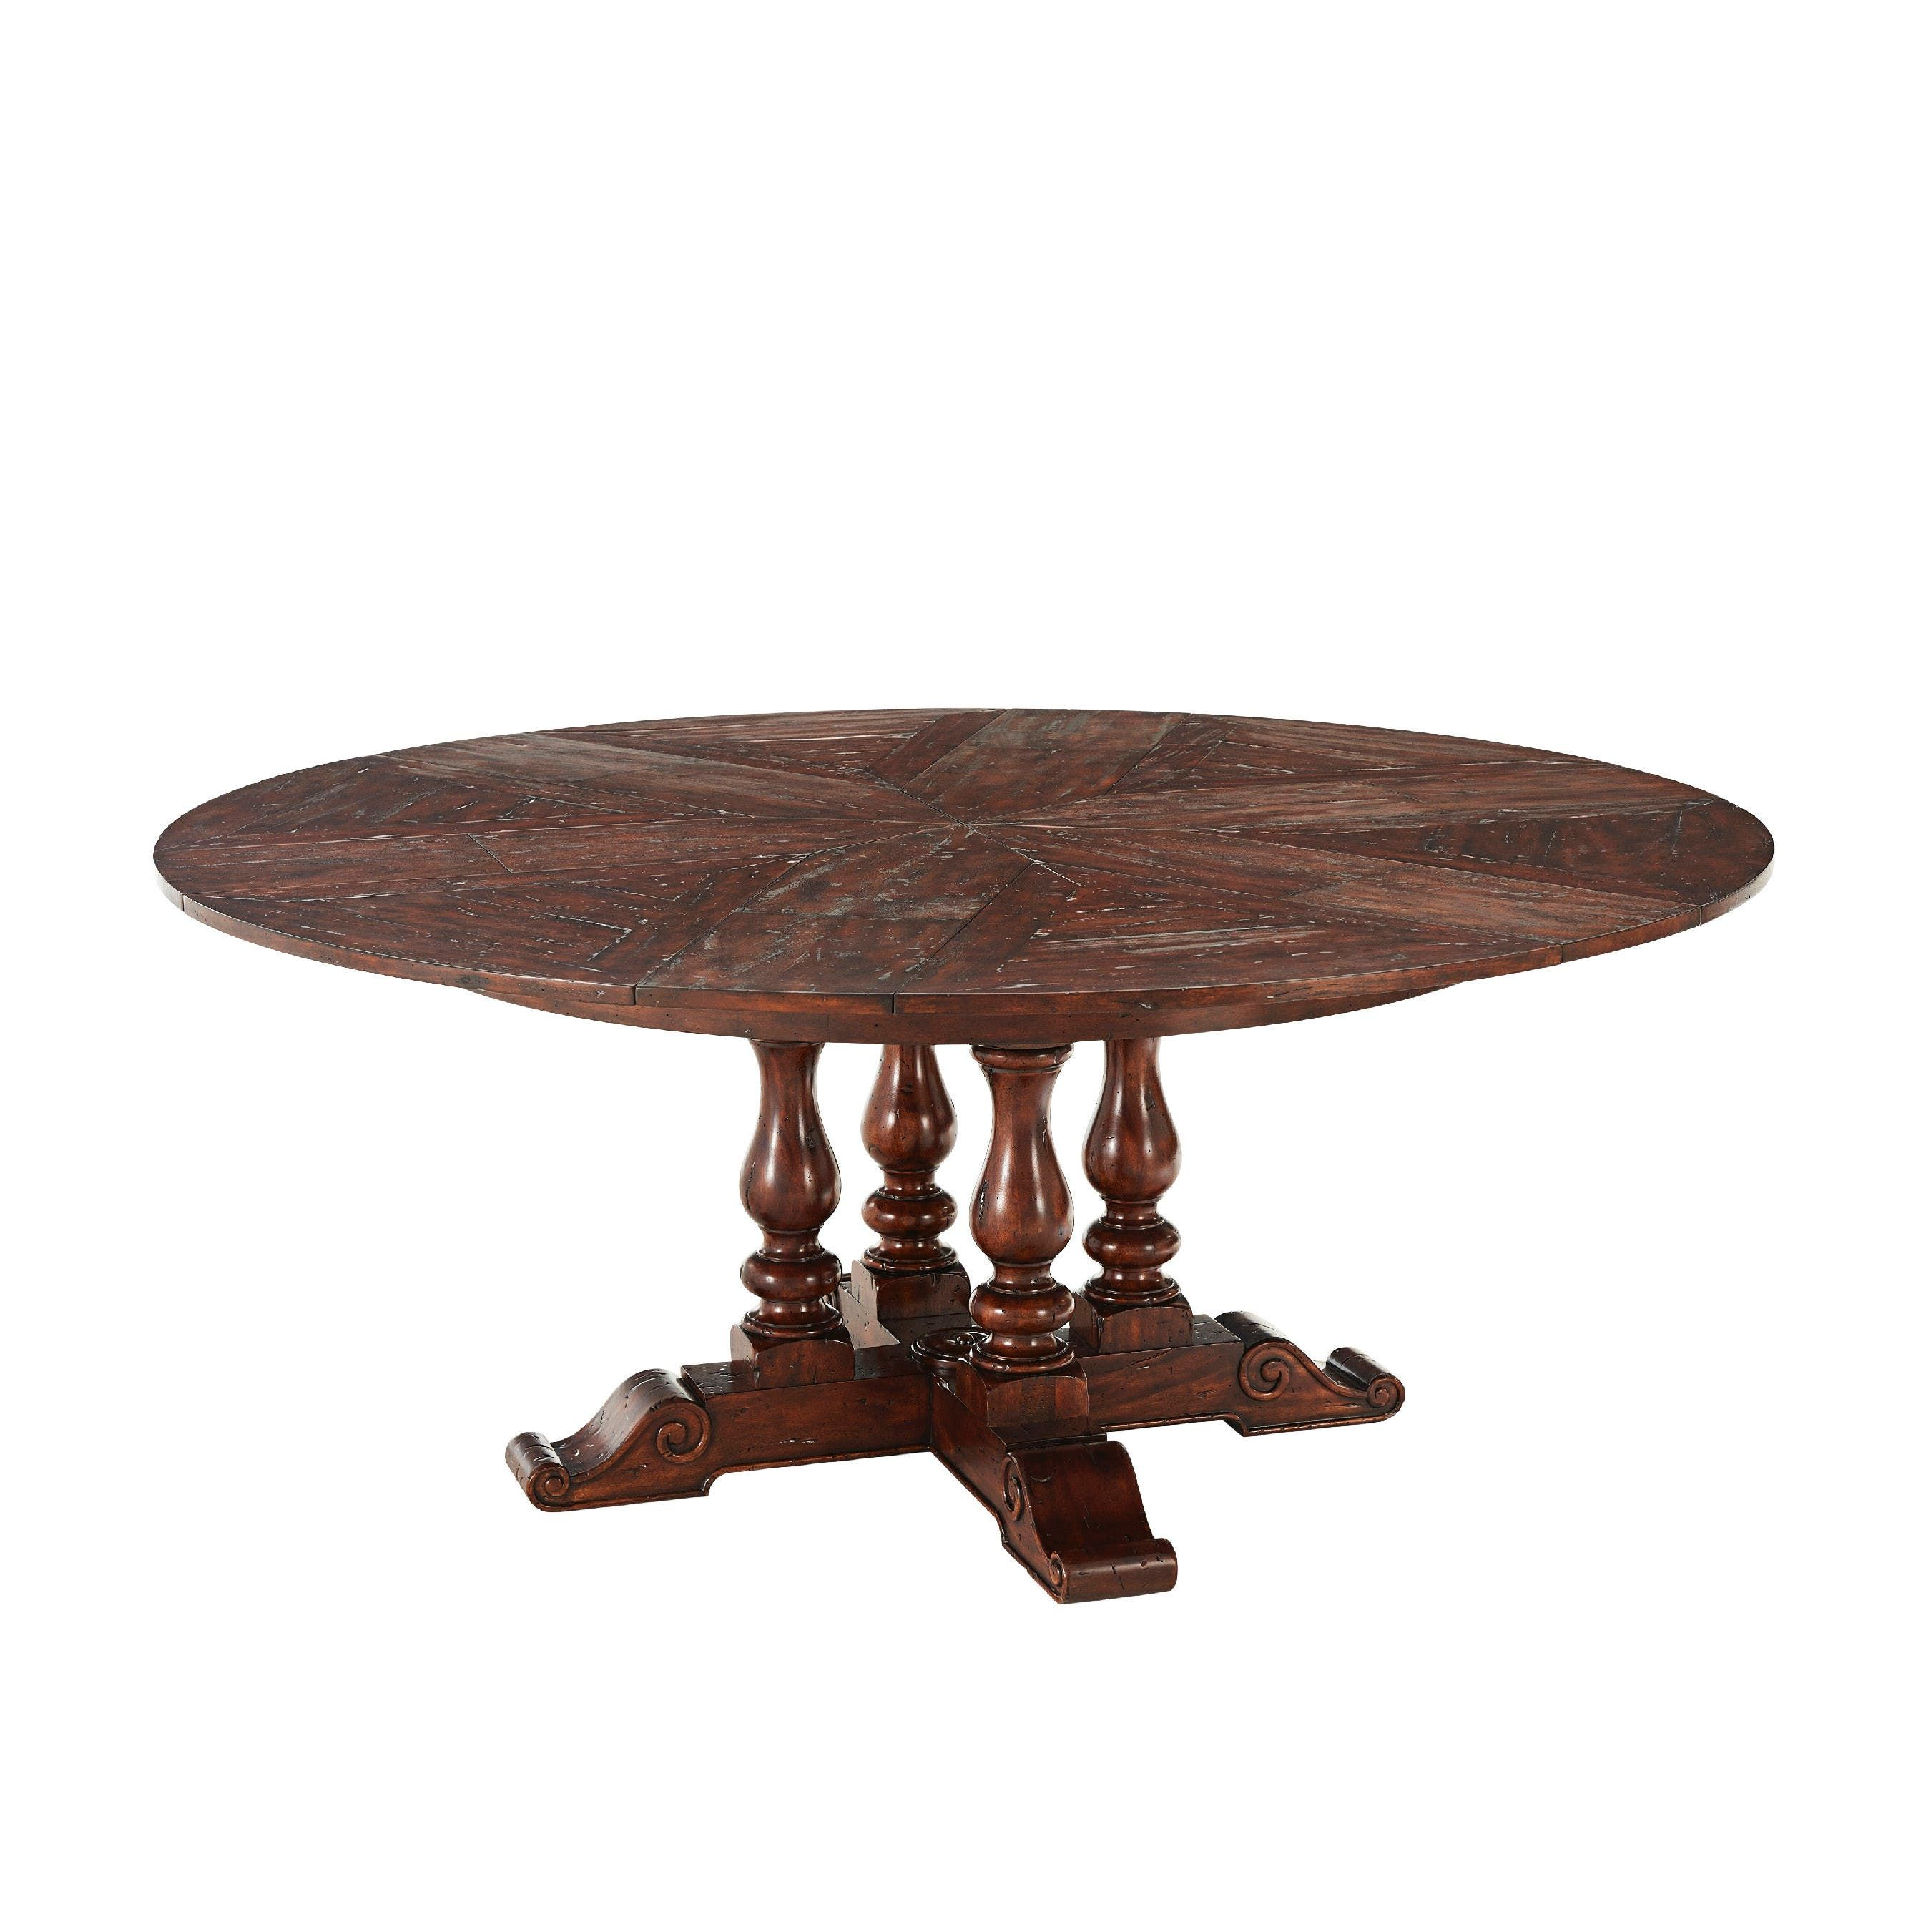 An Antiqued Wood Circular Extending Dining Table The Circular Top Impressive Dining Room Table With Pull Out Leaves Review